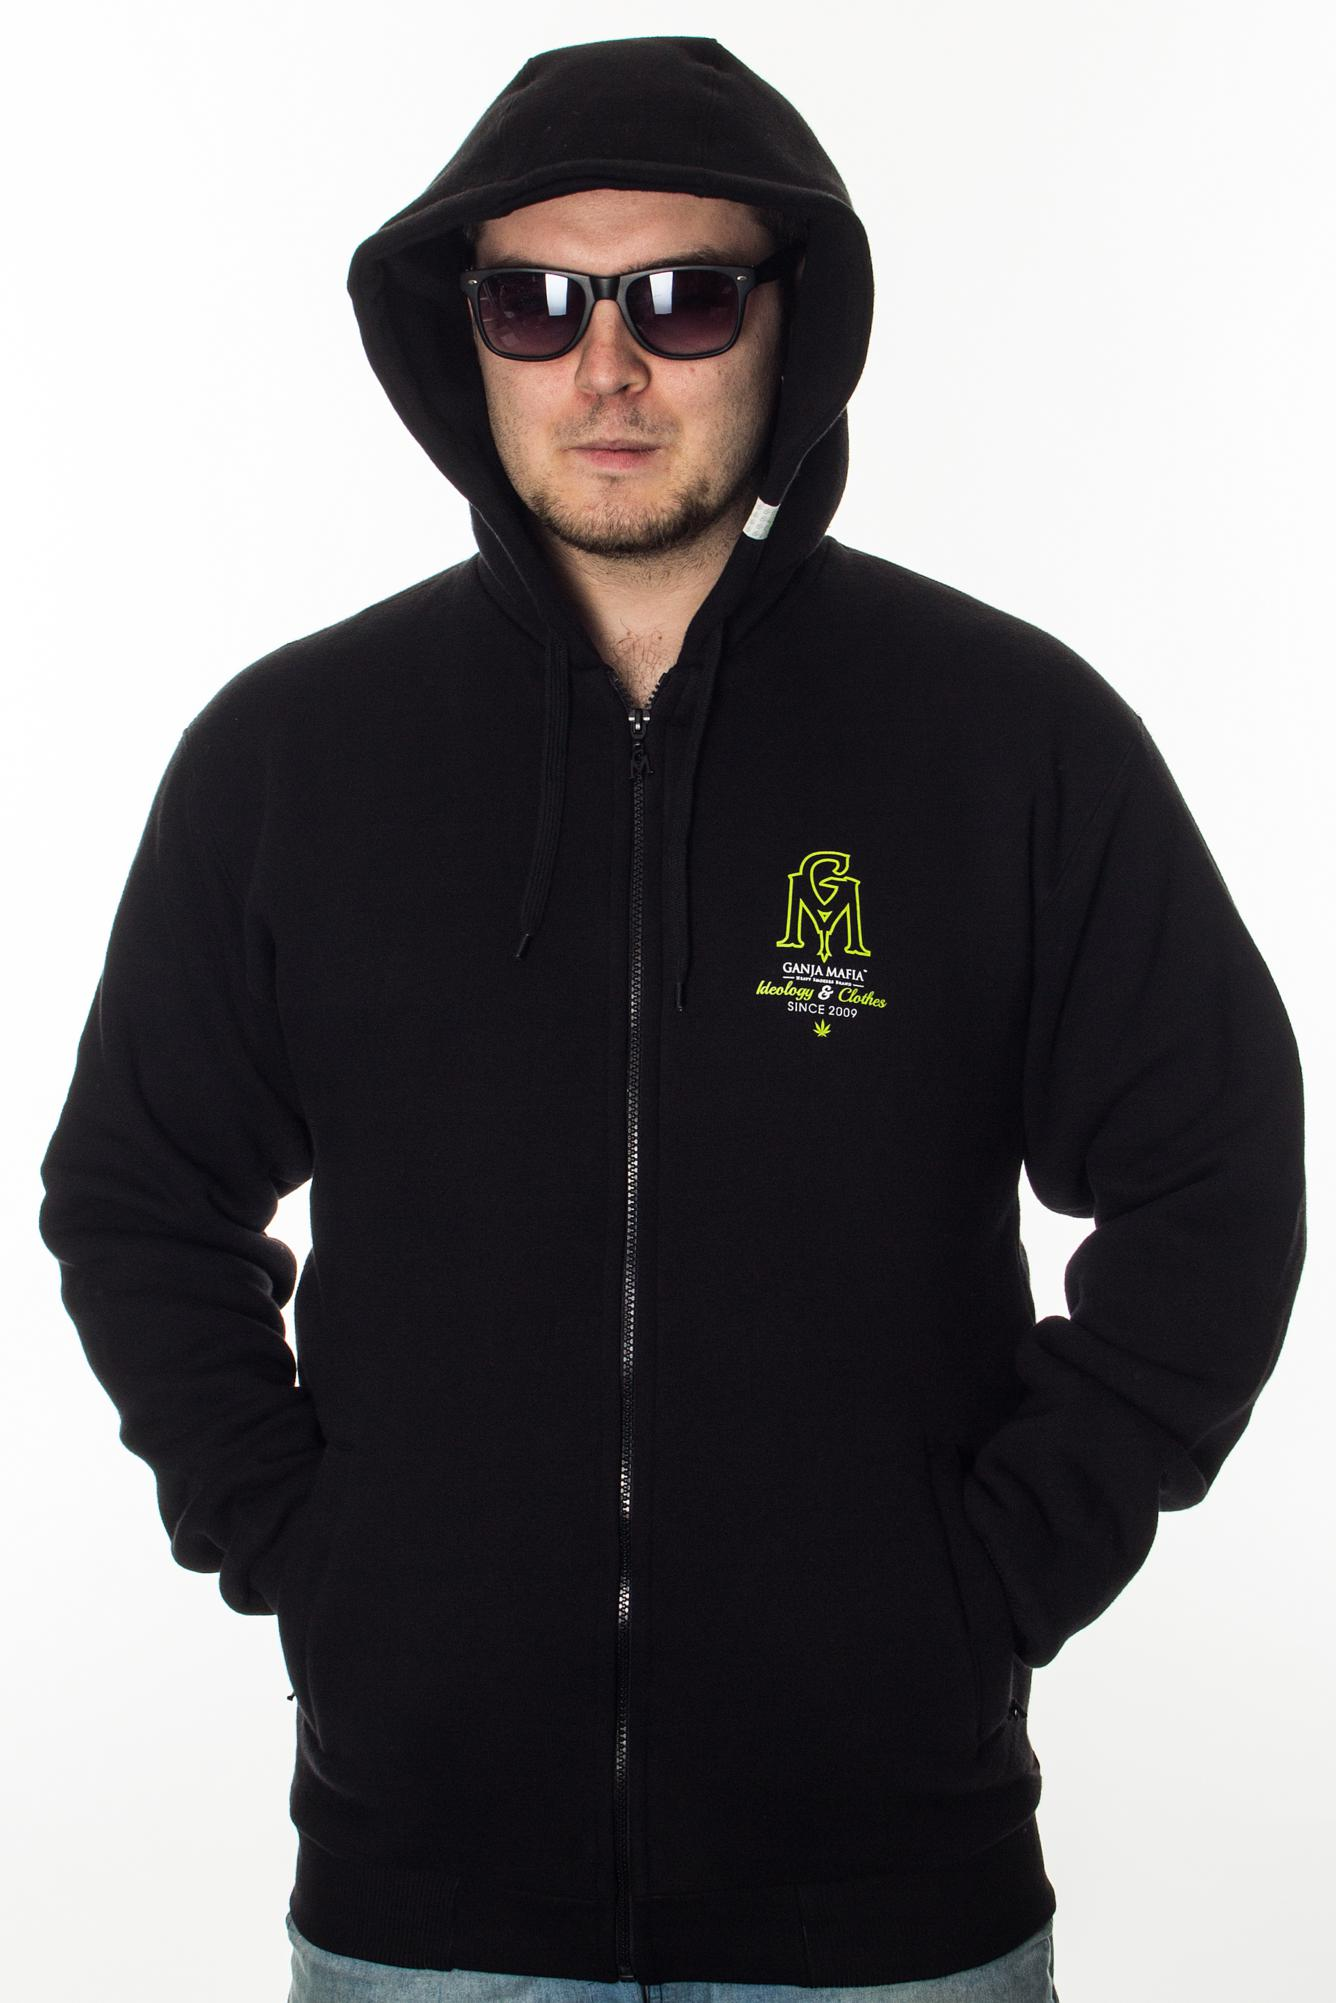 GANJA MAFIA BLUZA ZIP HERB BLACK-GREEN